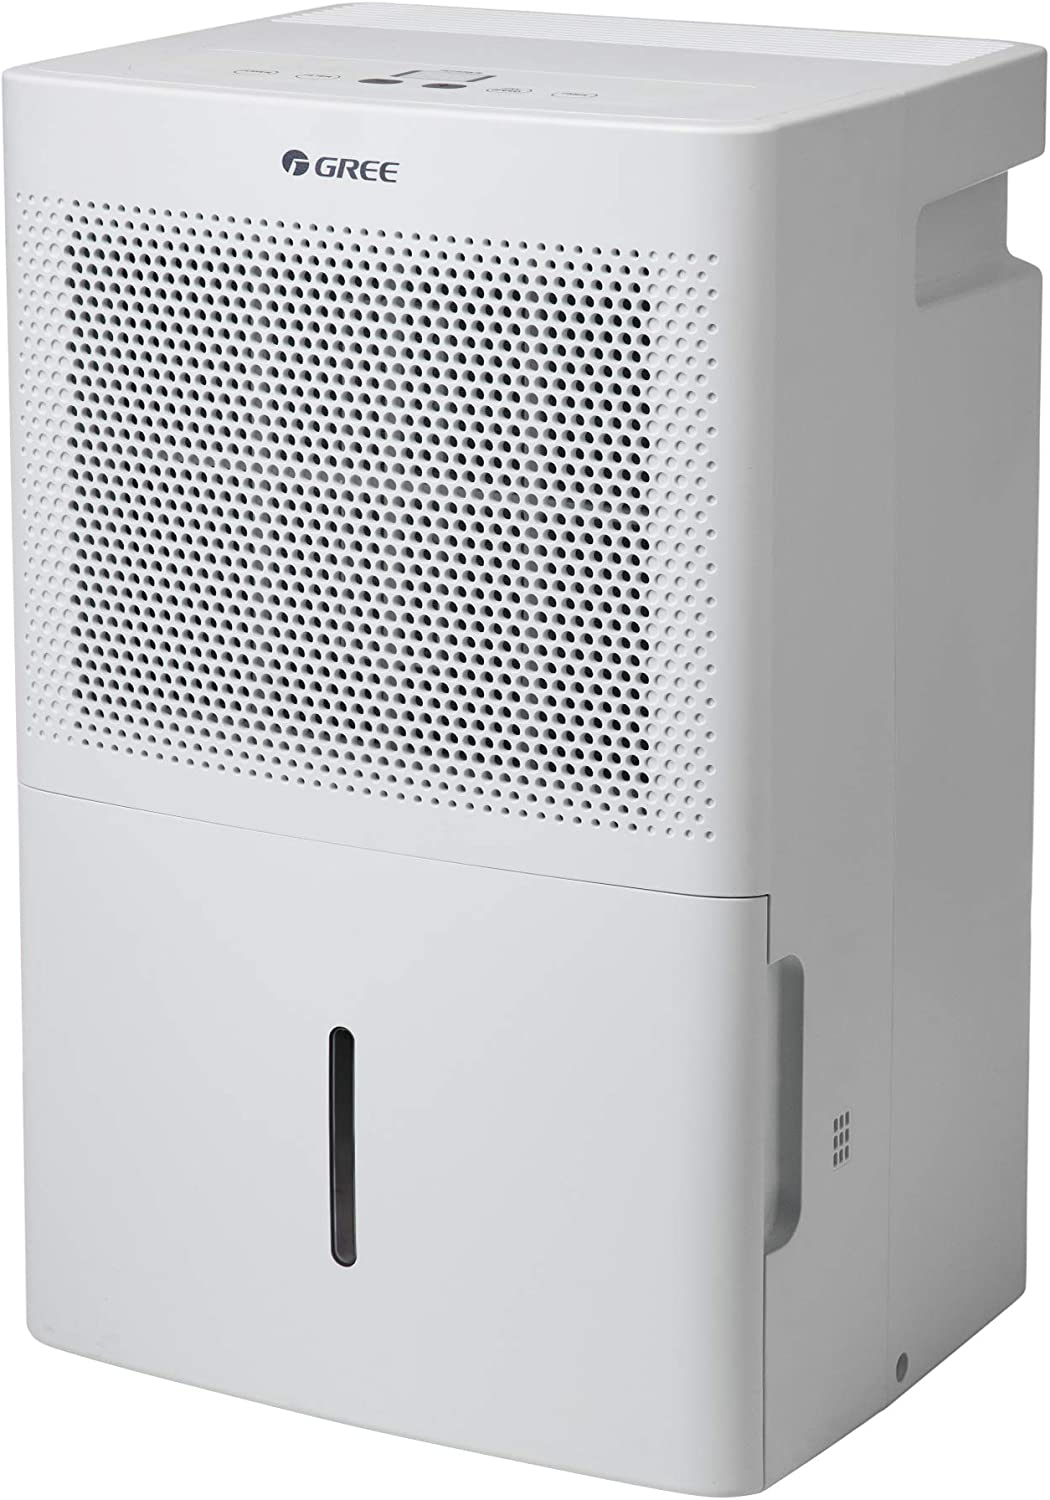 Gree Dehumidifier 35 Pint for up to 3000 Sq.ft, Energy Star Dehumidifier for Bathroom, Basement, Bedroom with Intelligent Humidity Control, LED Control panel, Quiet Design, Continuous Drainage